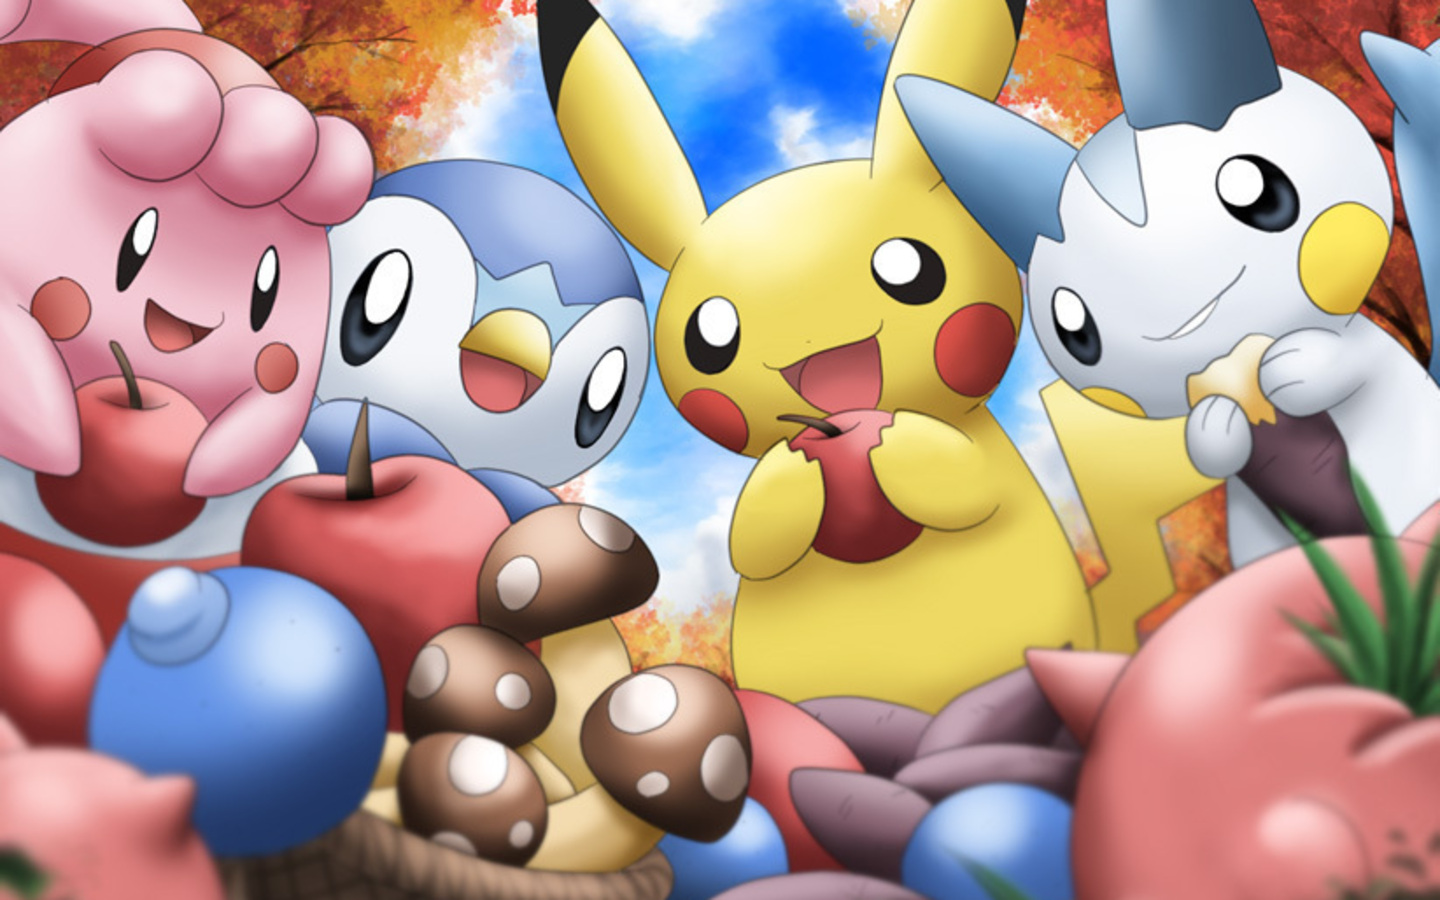 Wallpaper download pokemon - Cute Pokemon Free Desktop Wallpaper Download Cute Pokemon Free